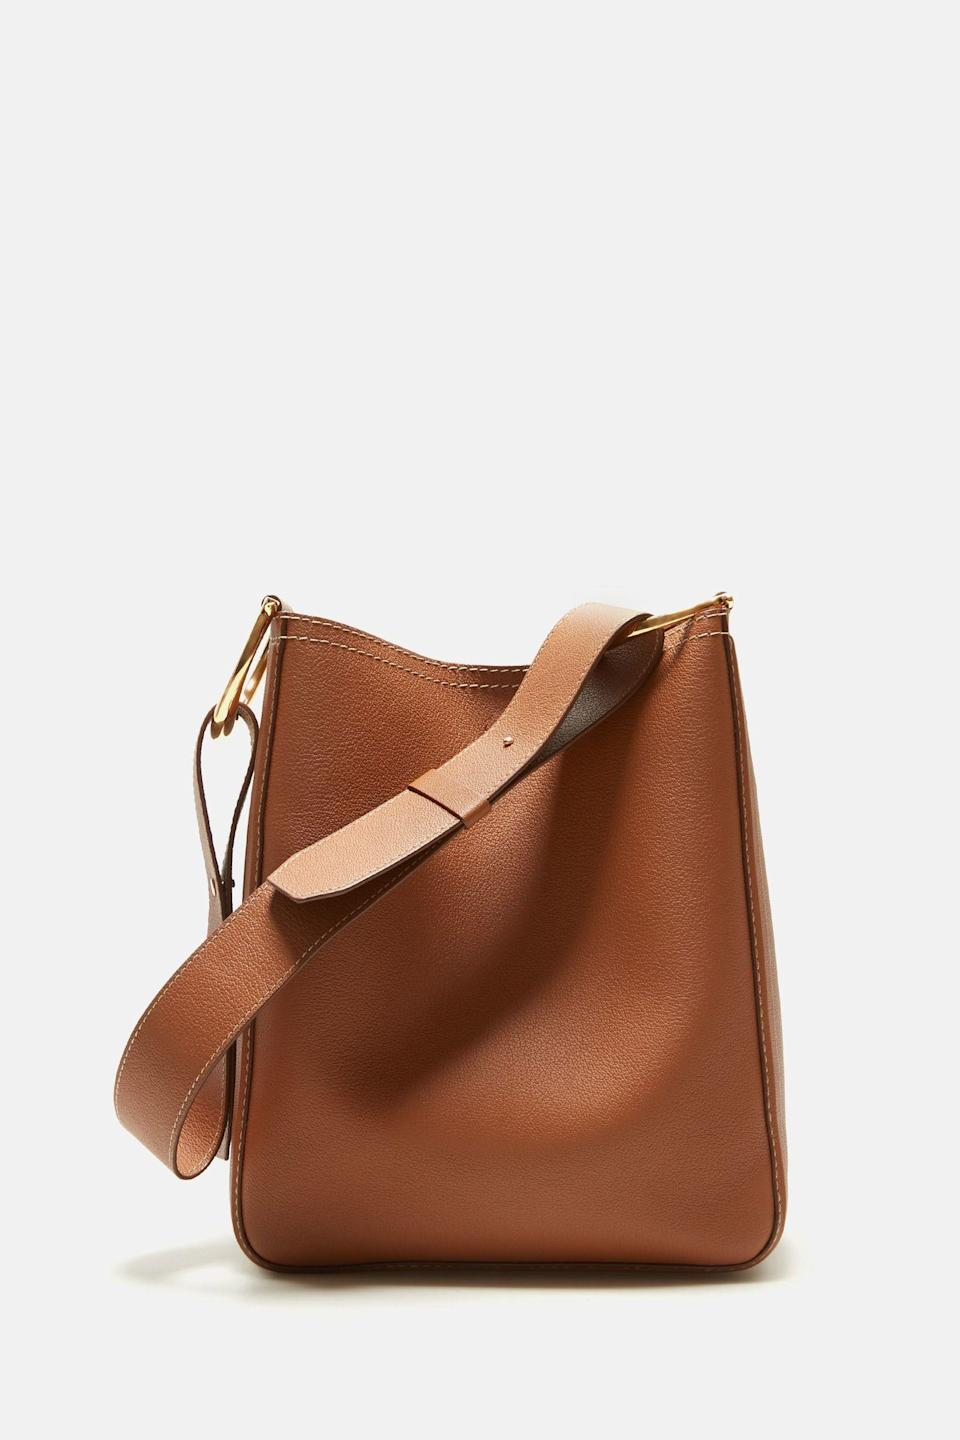 """<p><strong>CH Carolina Herrera</strong></p><p>chcarolinaherrera.com</p><p><strong>$1580.00</strong></p><p><a href=""""https://chcarolinaherrera.com/us/en/women-6756168-1/bags-6756204-1/must-haves-6756687-1/item/charro-insignia-hobo-medium-shoulder-bag-brown-aaca10dy03815-1"""" rel=""""nofollow noopener"""" target=""""_blank"""" data-ylk=""""slk:SHOP IT"""" class=""""link rapid-noclick-resp"""">SHOP IT</a></p><p>This cute mediums shoulder bag will keep all her belongings neat and tidy. As part of CH Carolina Herrera's Heart for Hope initiative with the Red Cross, the label will be donating 10 percent of all global accessories sales until December 31, 2020 to the organization.<br></p>"""